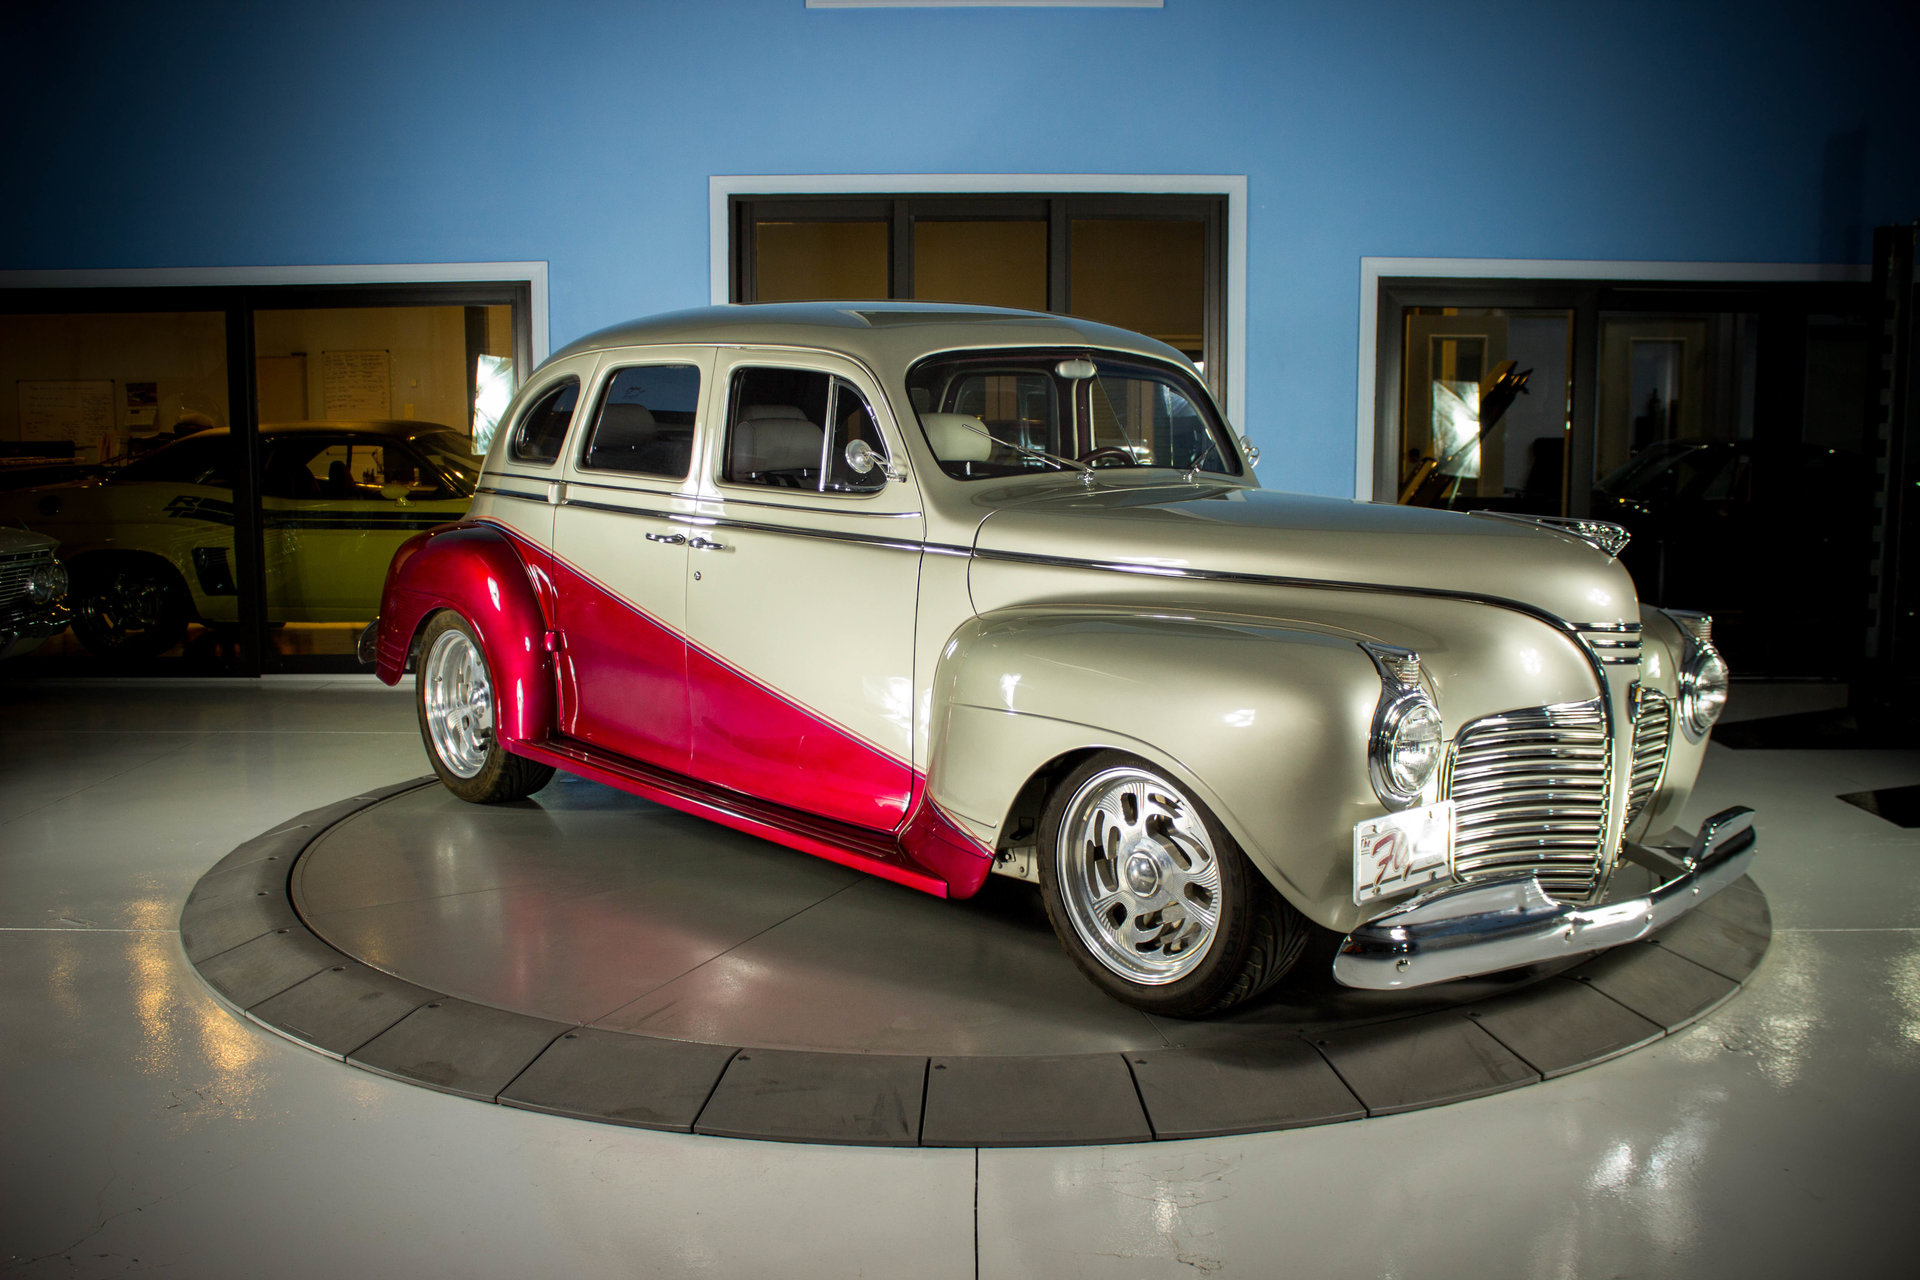 1941 Plymouth P12 Special Deluxe Classic Cars Used For Sale 4 Door